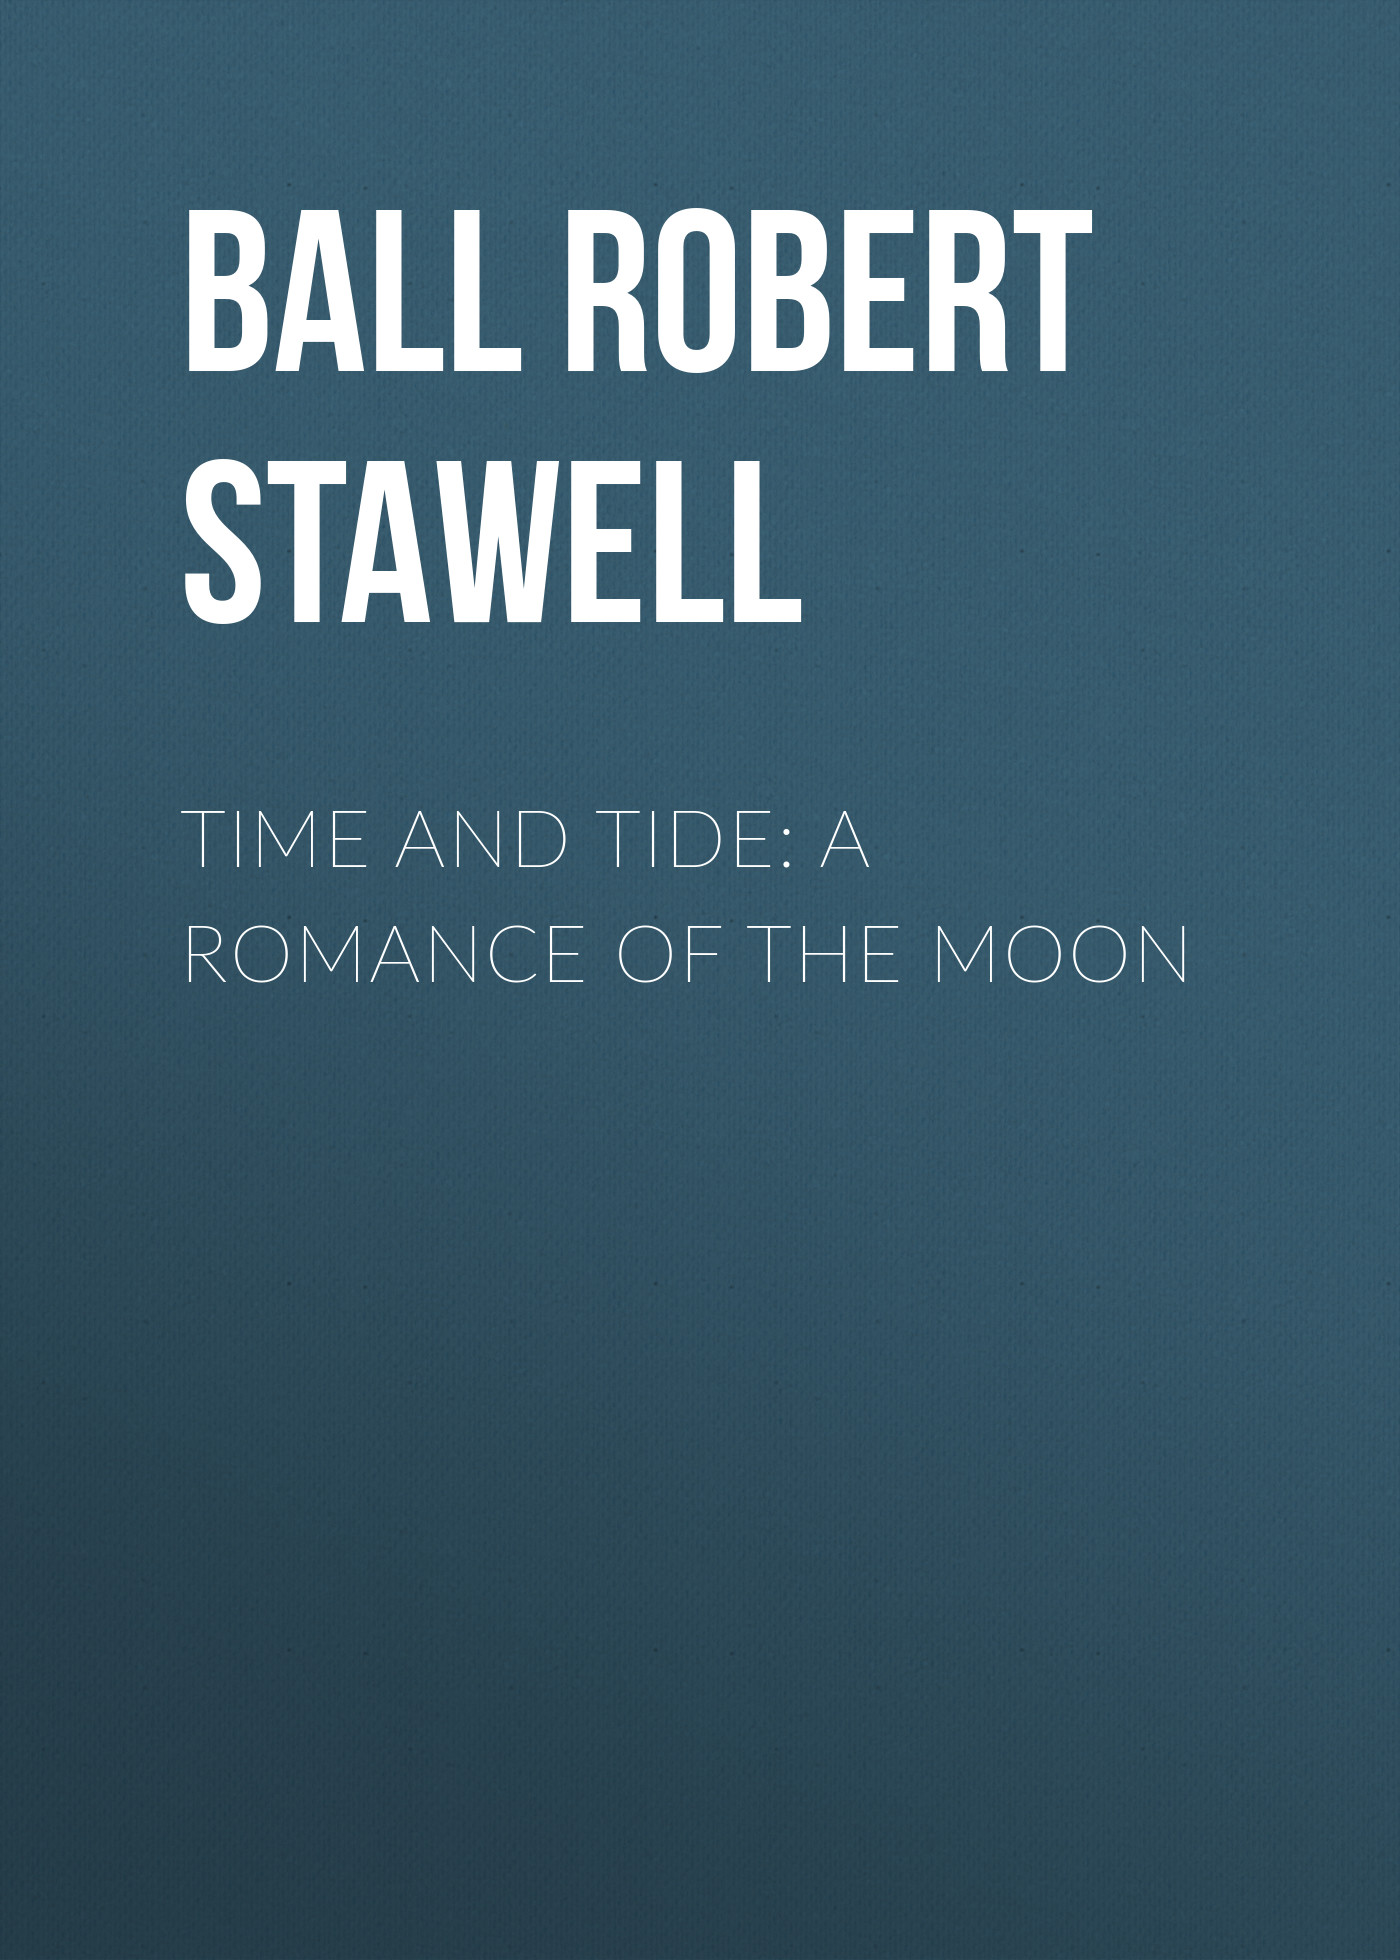 Ball Robert Stawell Time and Tide: A Romance of the Moon